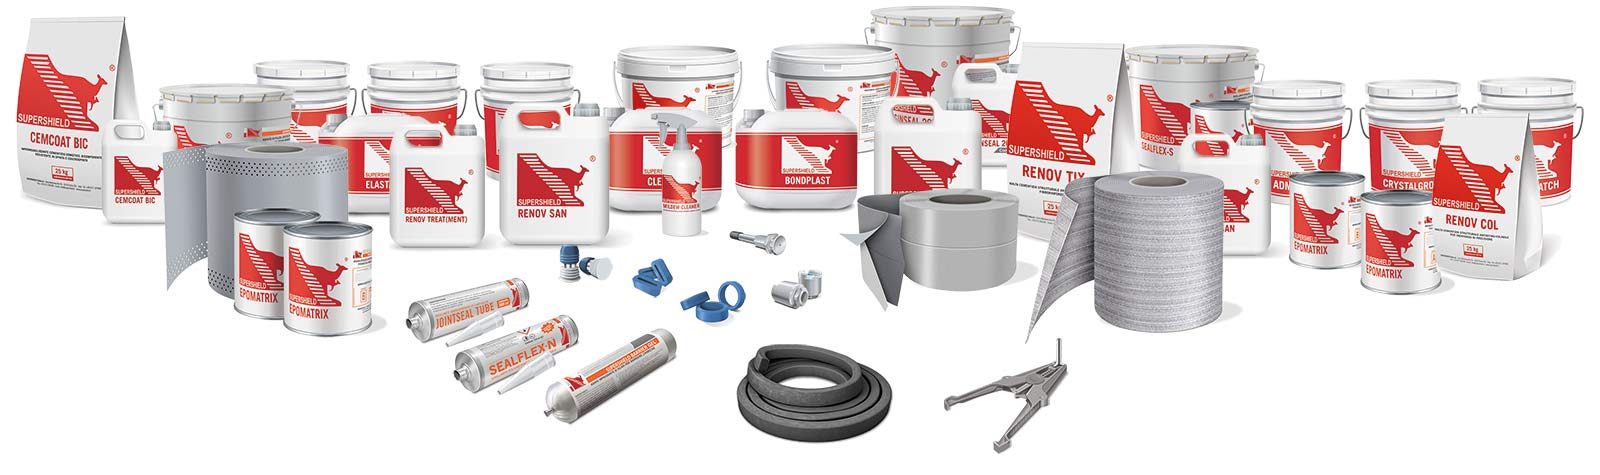 supershield range products